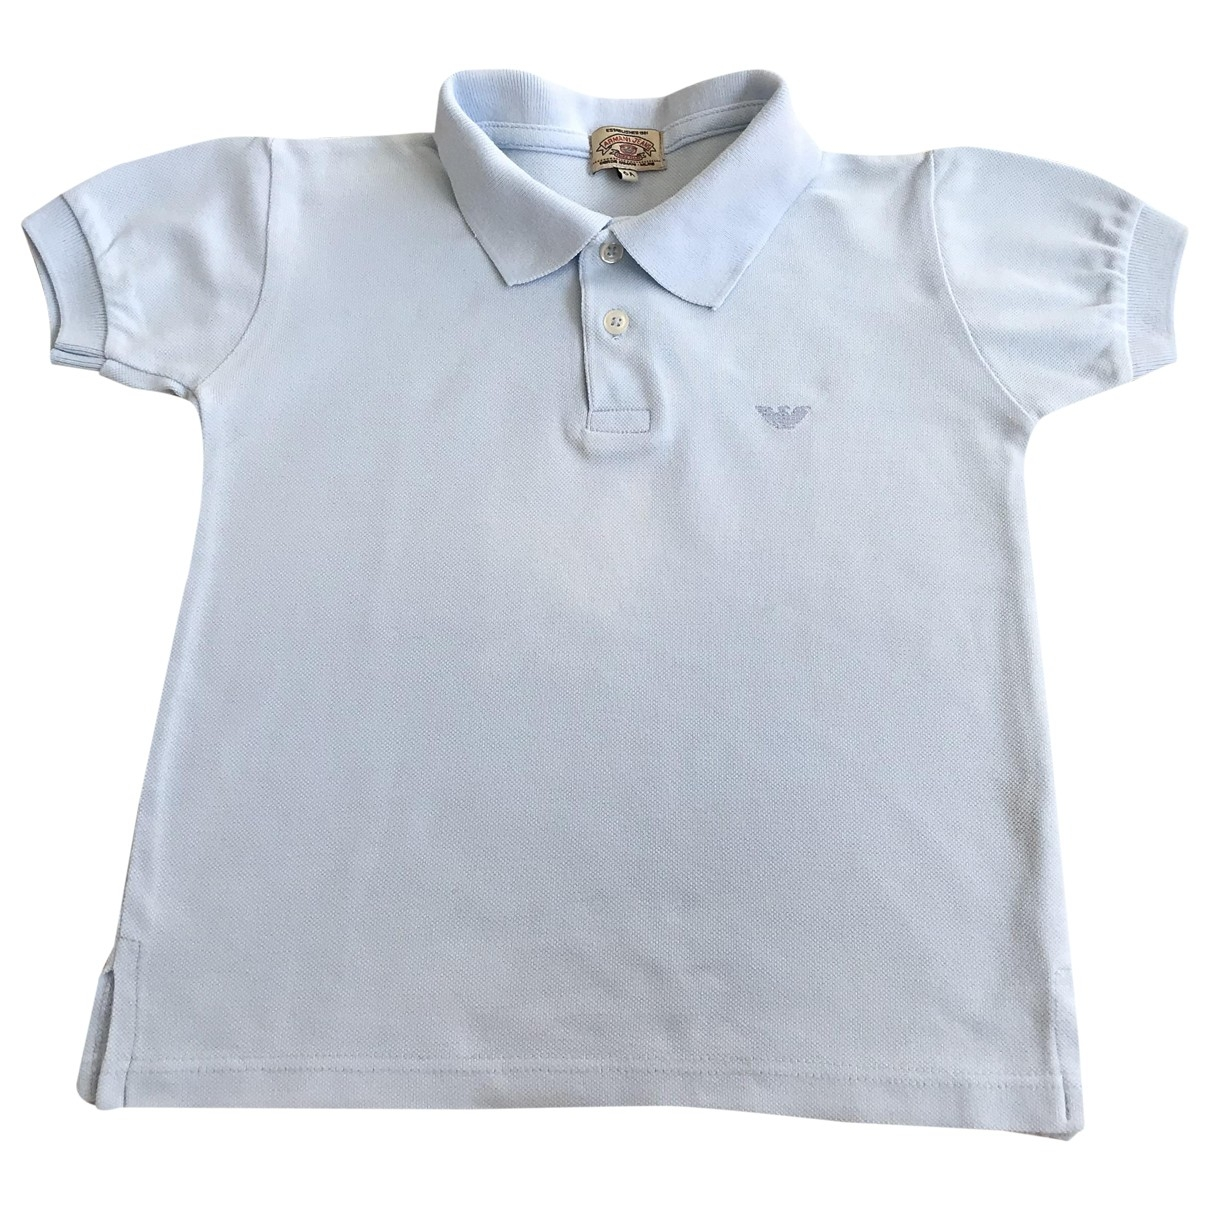 Armani Jeans \N Blue Cotton  top for Kids 6 years - up to 114cm FR